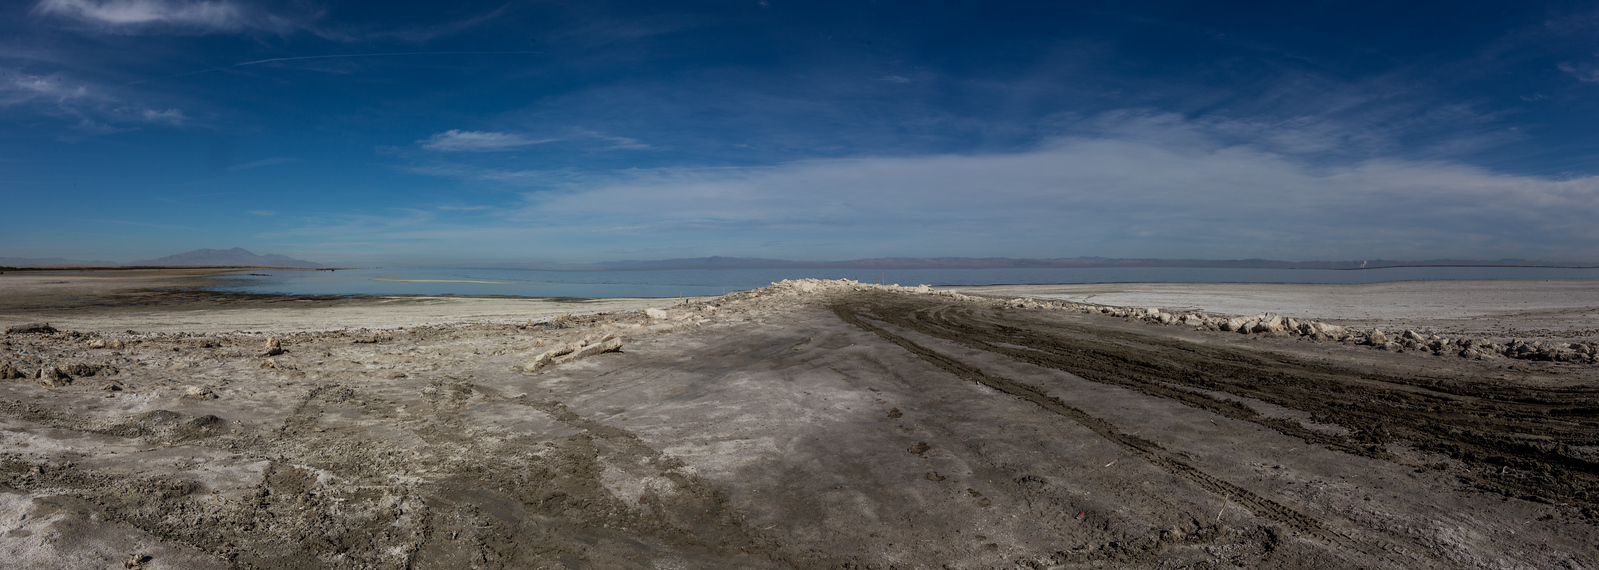 Panorama. Looking north from the southern shore of the Salton Sea at the end of Poe Road